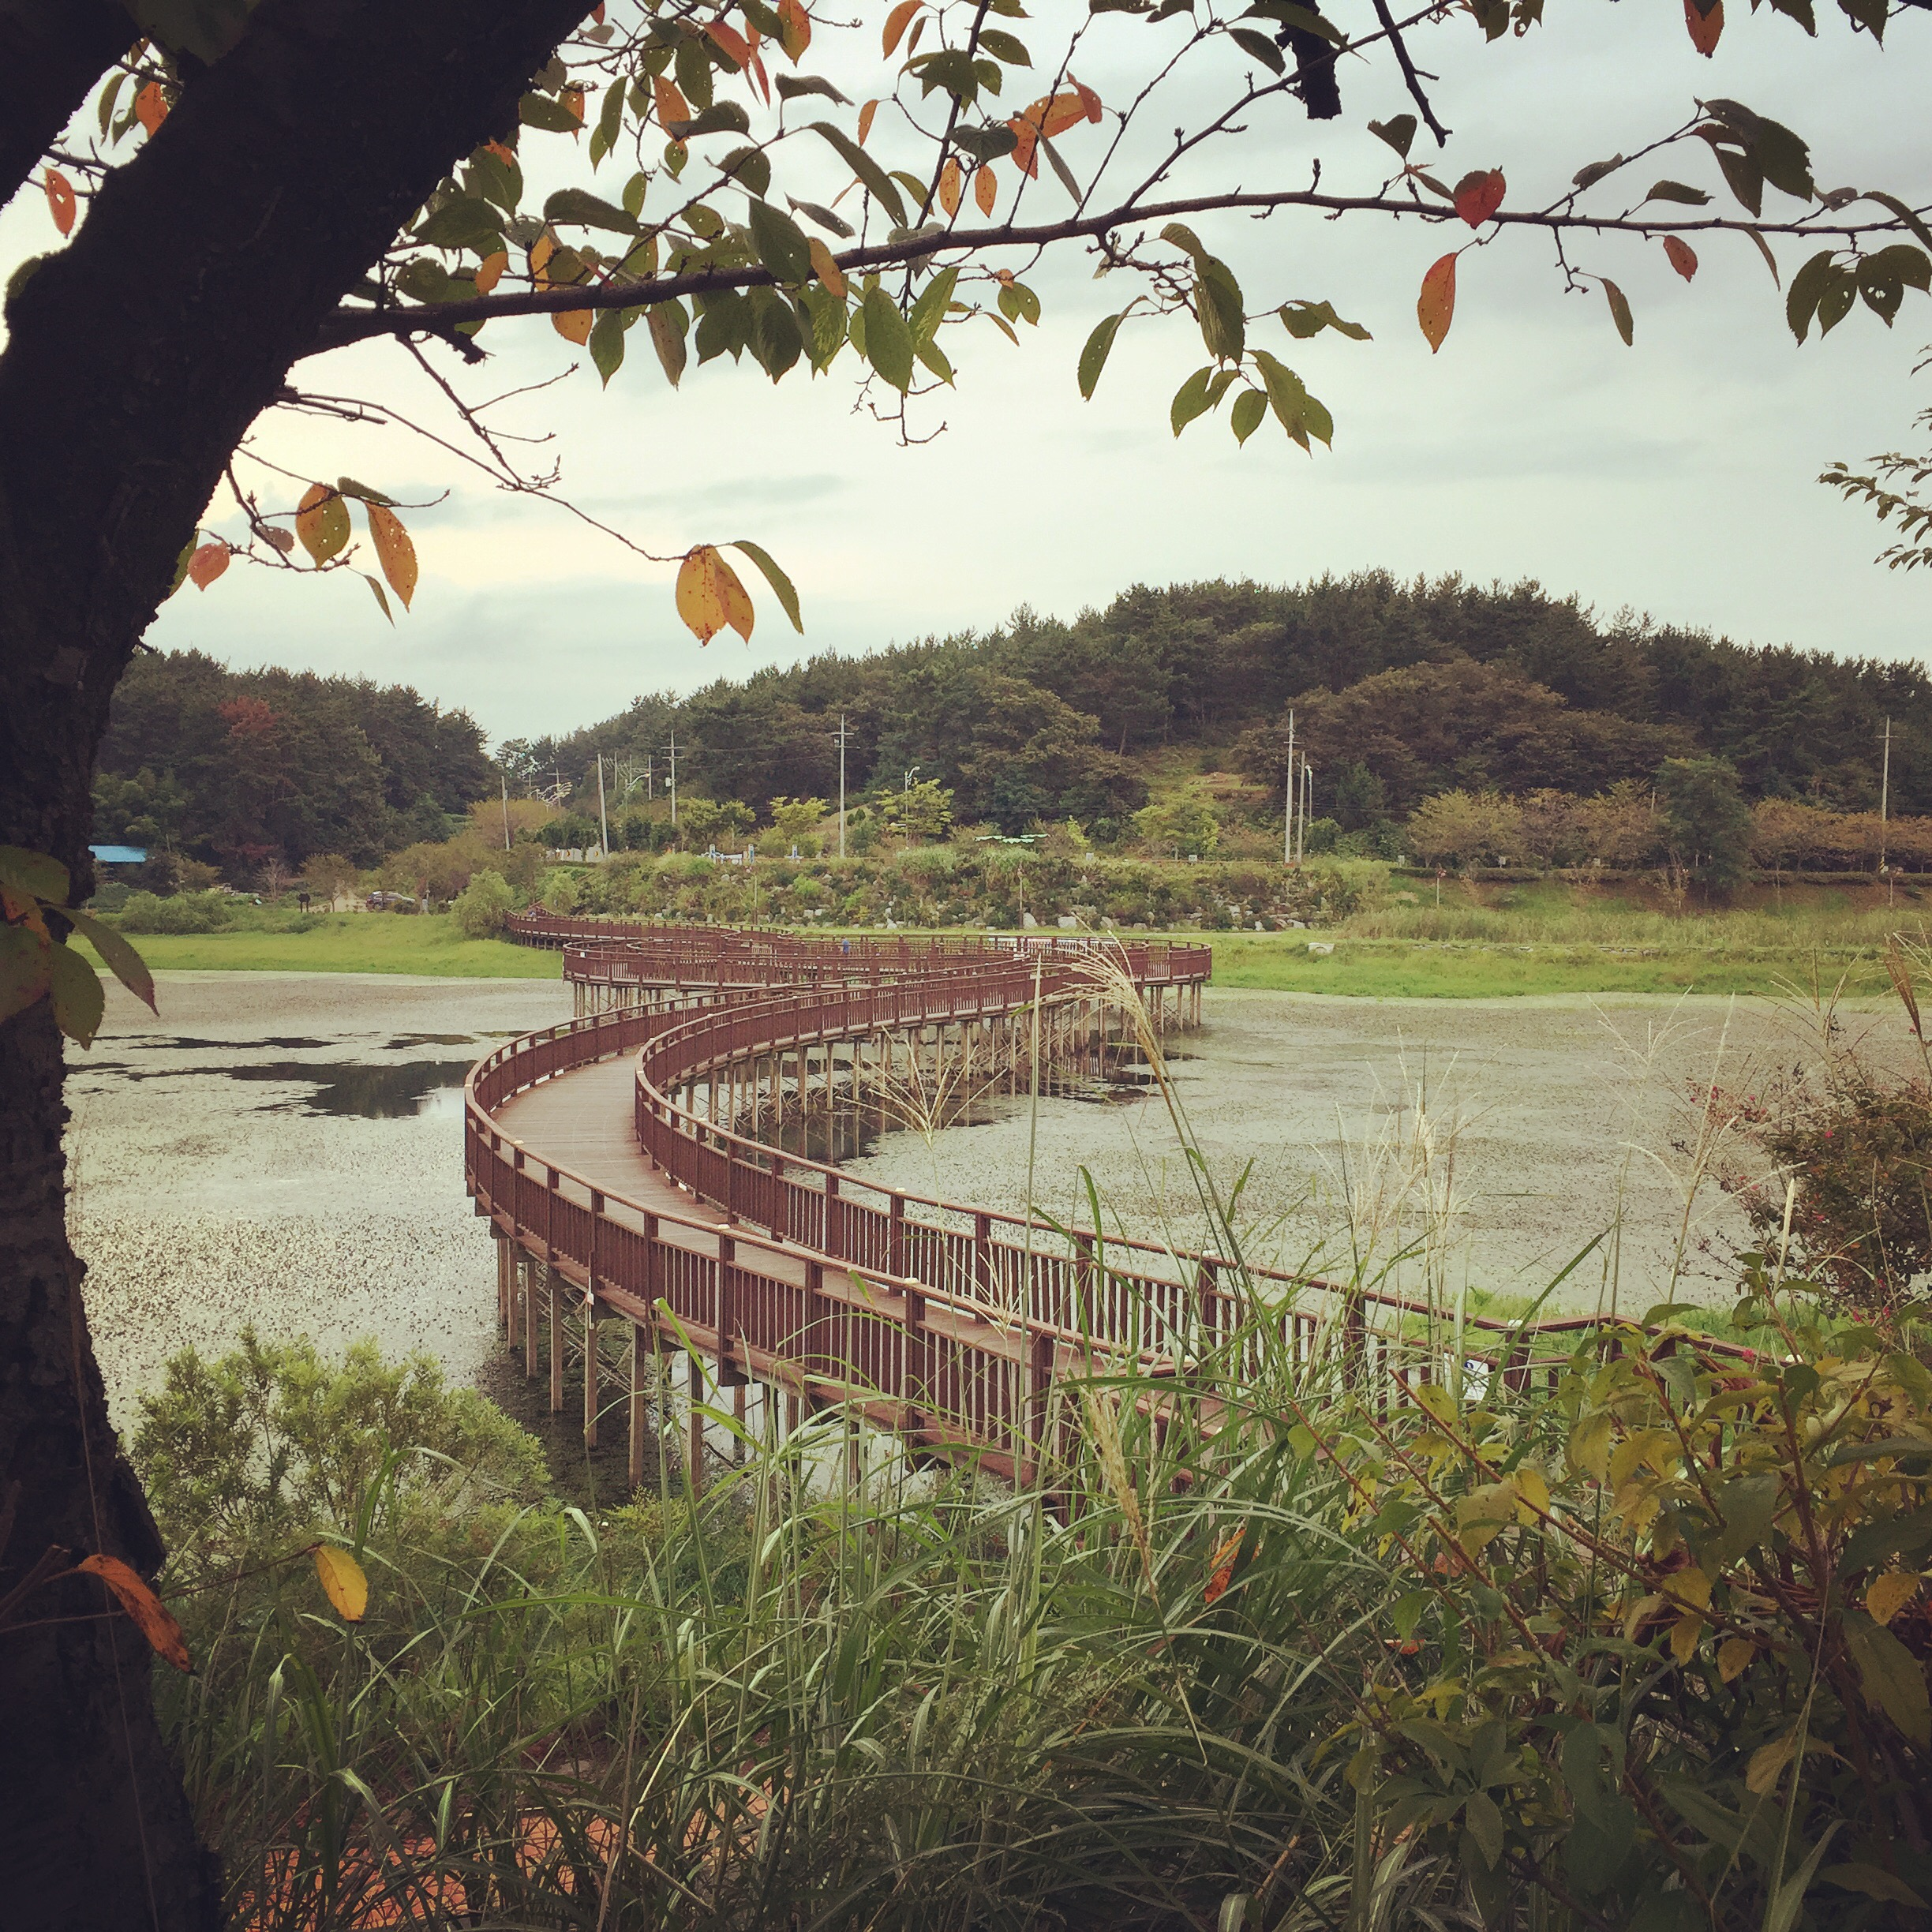 Another bridge at Eunpa Lake Park